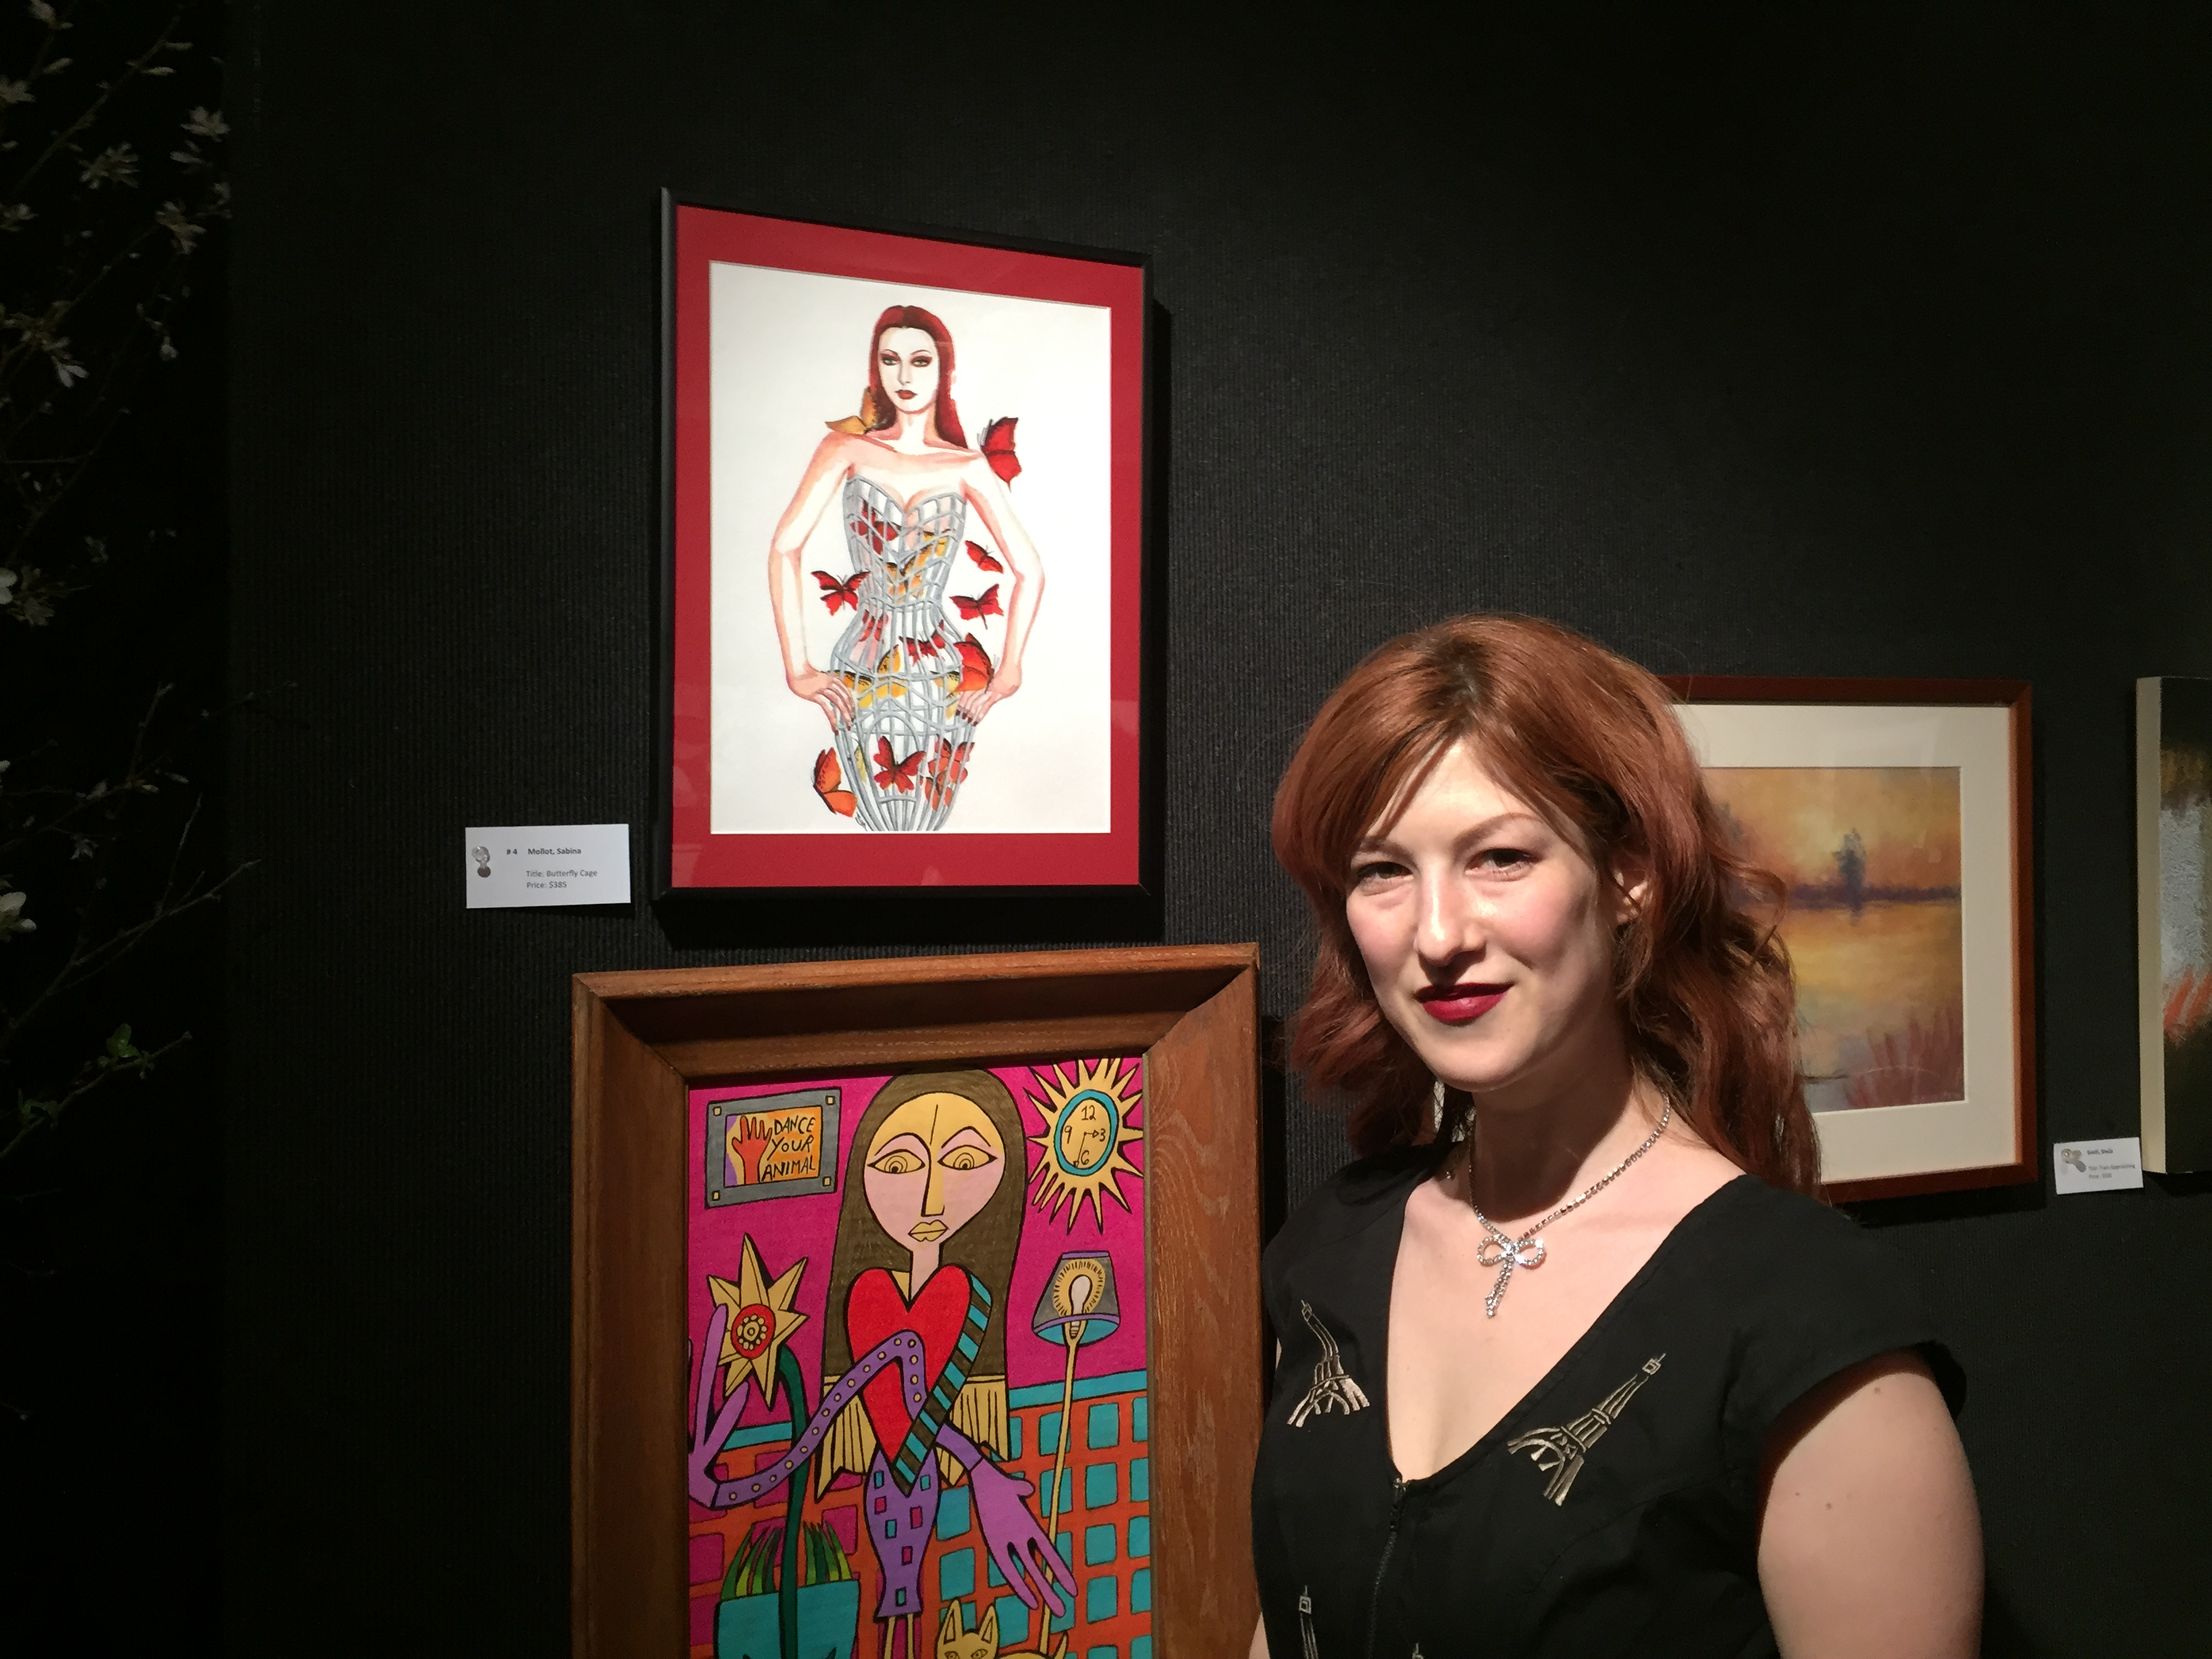 Crowds come out for group art show at National Arts Club